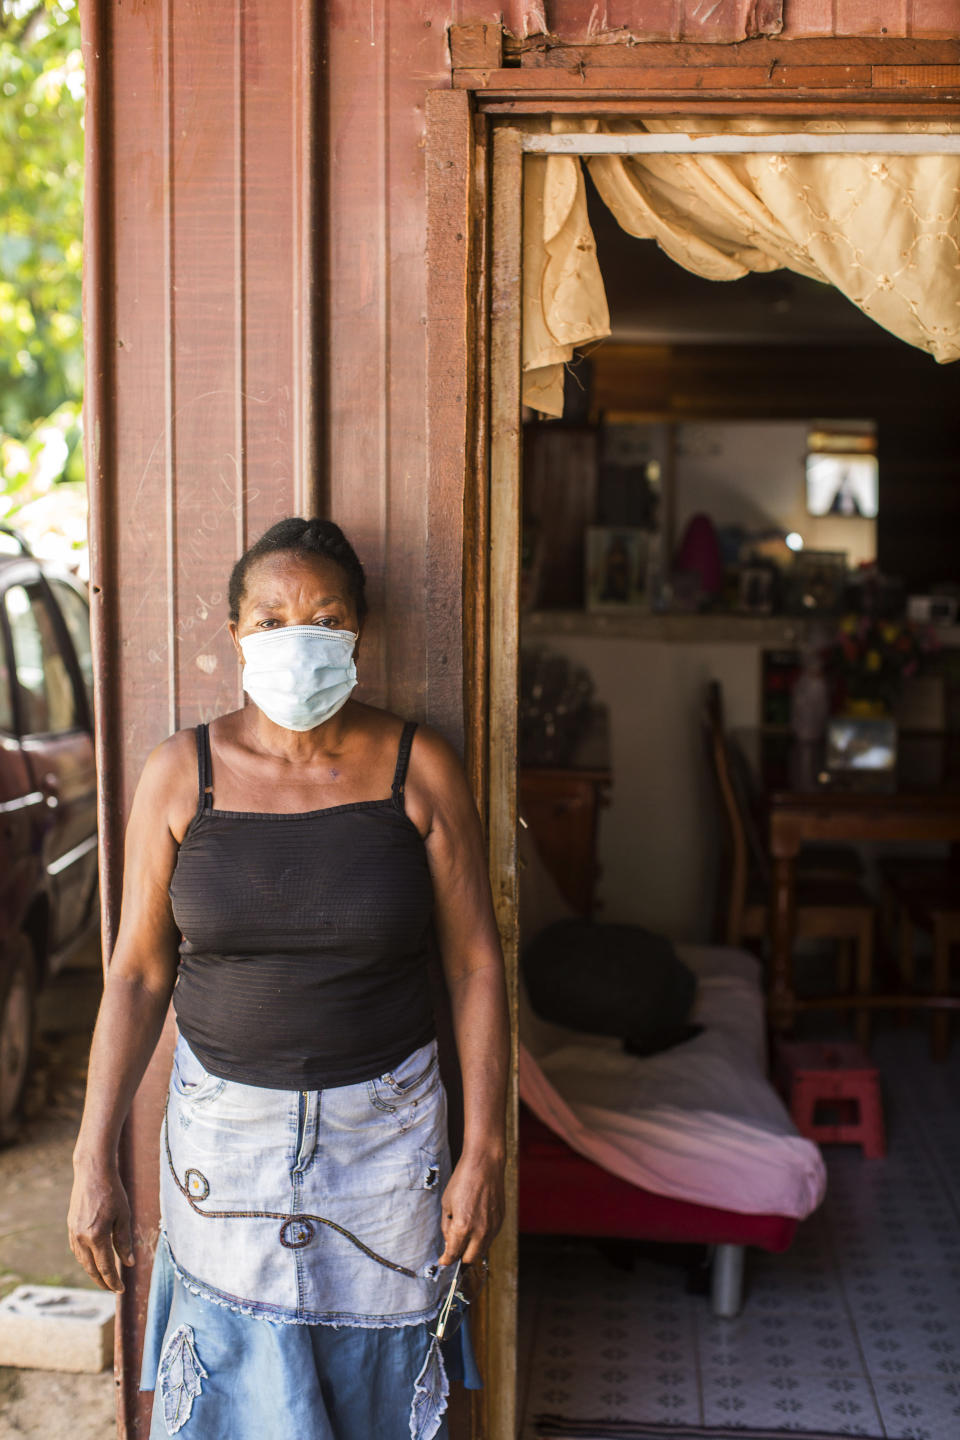 A woman from Haiti poses in front of her home in the slum district of Mont Baduel, in Cayenne, French Guiana, Friday, July 10, 2020. France's most worrisome virus hotspot is in fact on the border with Brazil - in French Guiana, a former colony where health care is scarce and poverty is rampant. The pandemic is exposing deep economic and racial inequality in French Guiana that residents say the mainland has long chosen to ignore. (AP Photo/Pierre Olivier Jay)